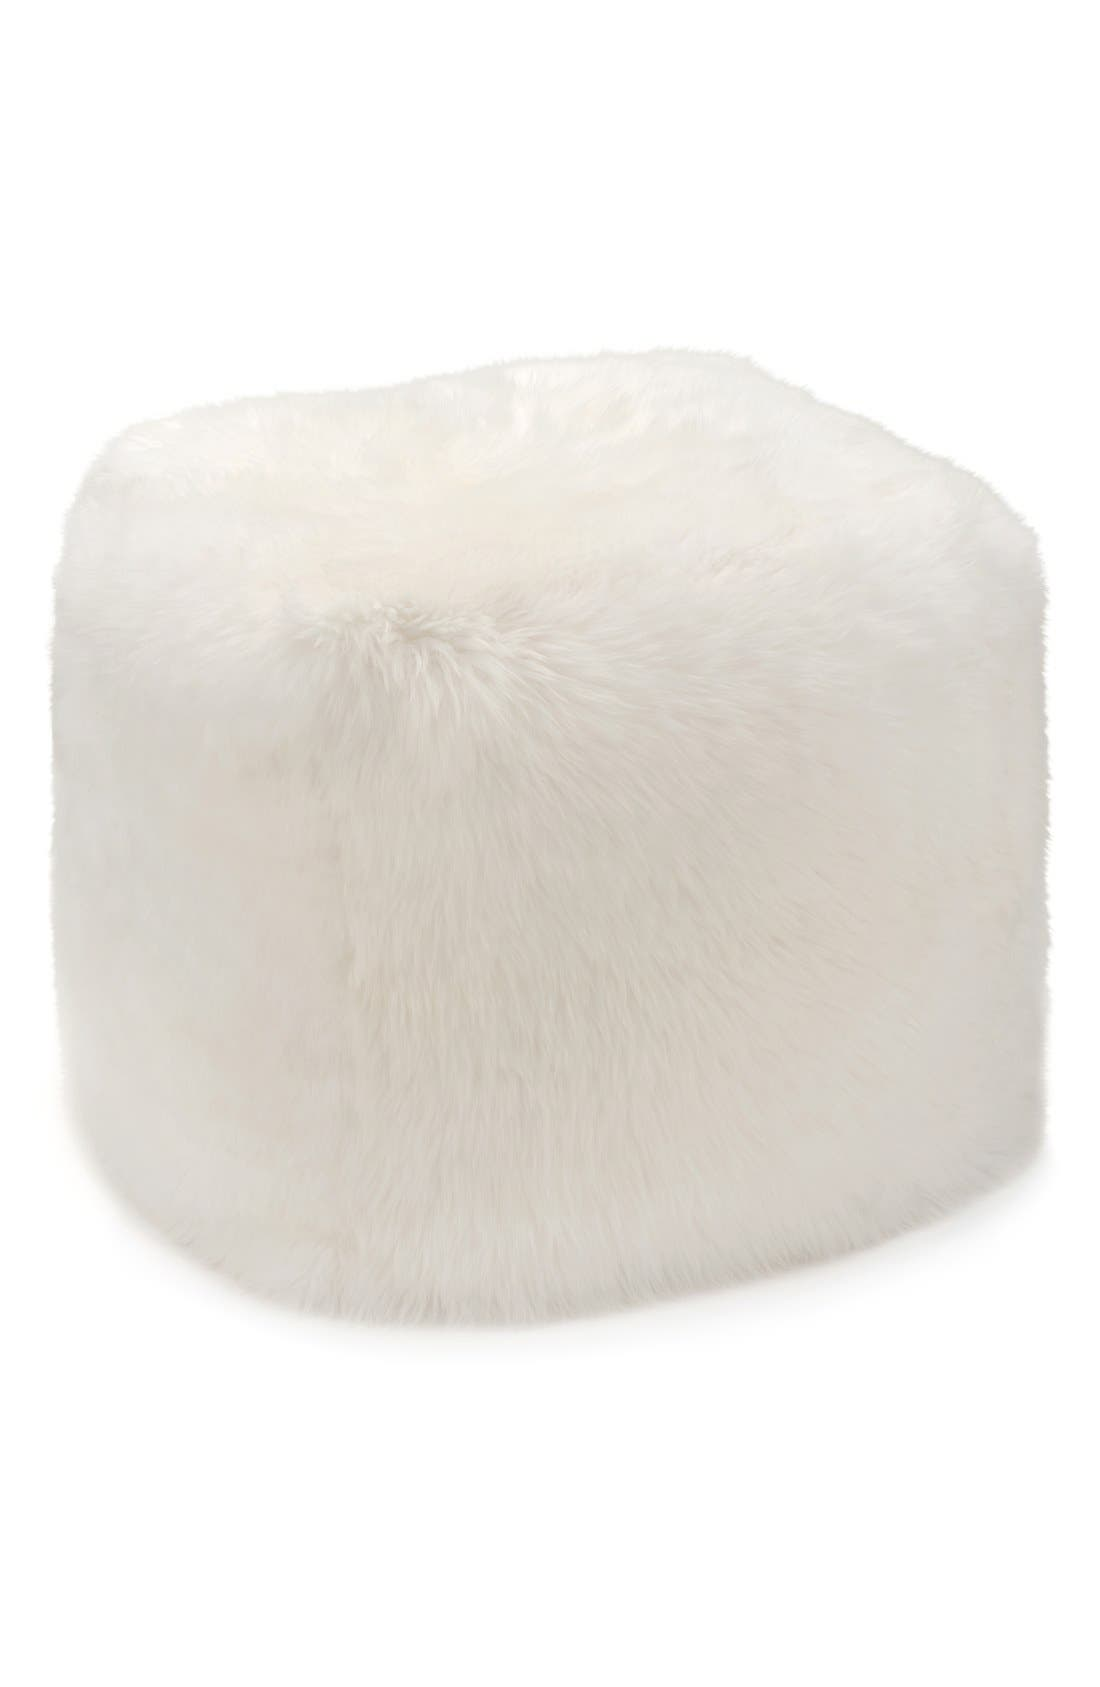 Alternate Image 1 Selected - UGG® Genuine Shearling Pouf